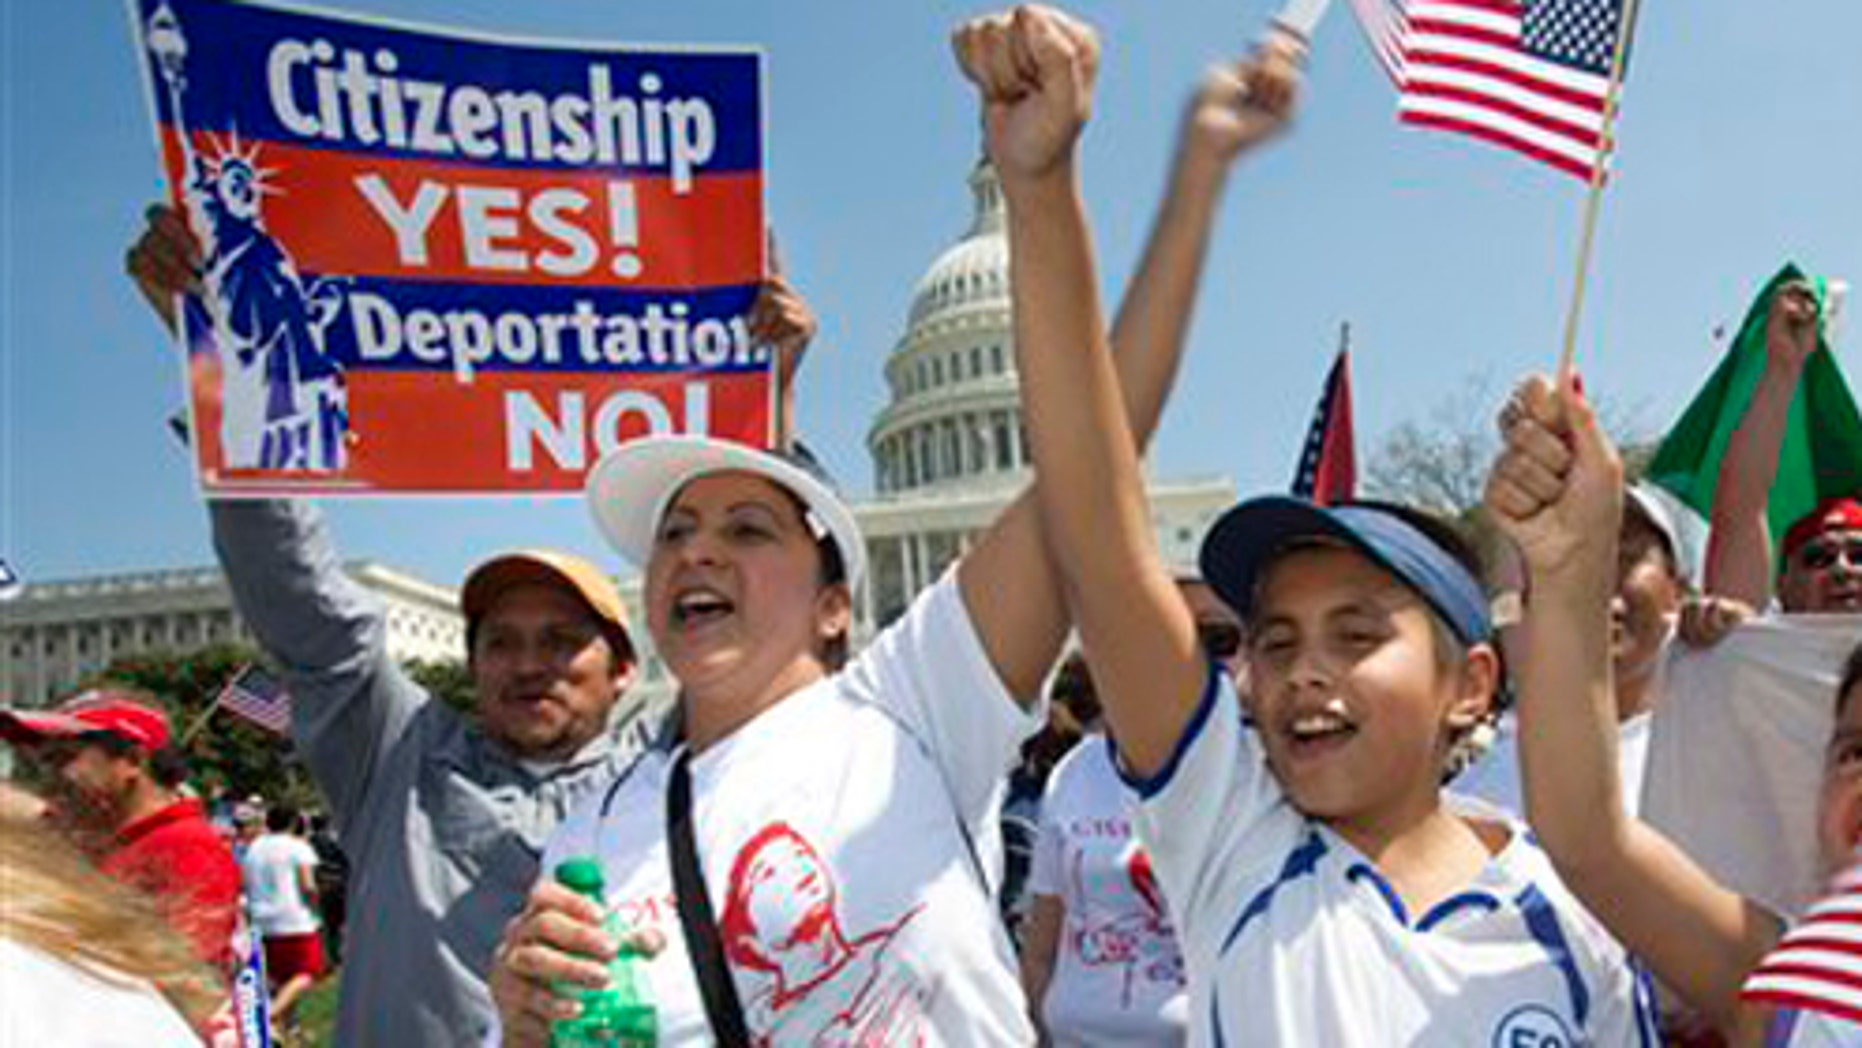 "Adita Chicas, left, and her son Jessy Chicas, 10, of Woodbridge, Va., cheer as they arrive at the ""Rally for Citizenship"" on Capitol, Hill in Washington, Wednesday, April 10, 2013, where tens of thousands of immigrants and their supporters are expected to rally for immigration reform. Bipartisan groups in the House and Senate are said to be completing immigration bills that include a pathway to citizenship for the nation's 11 million immigrants with illegal status. (AP Photo/Jacquelyn Martin)"